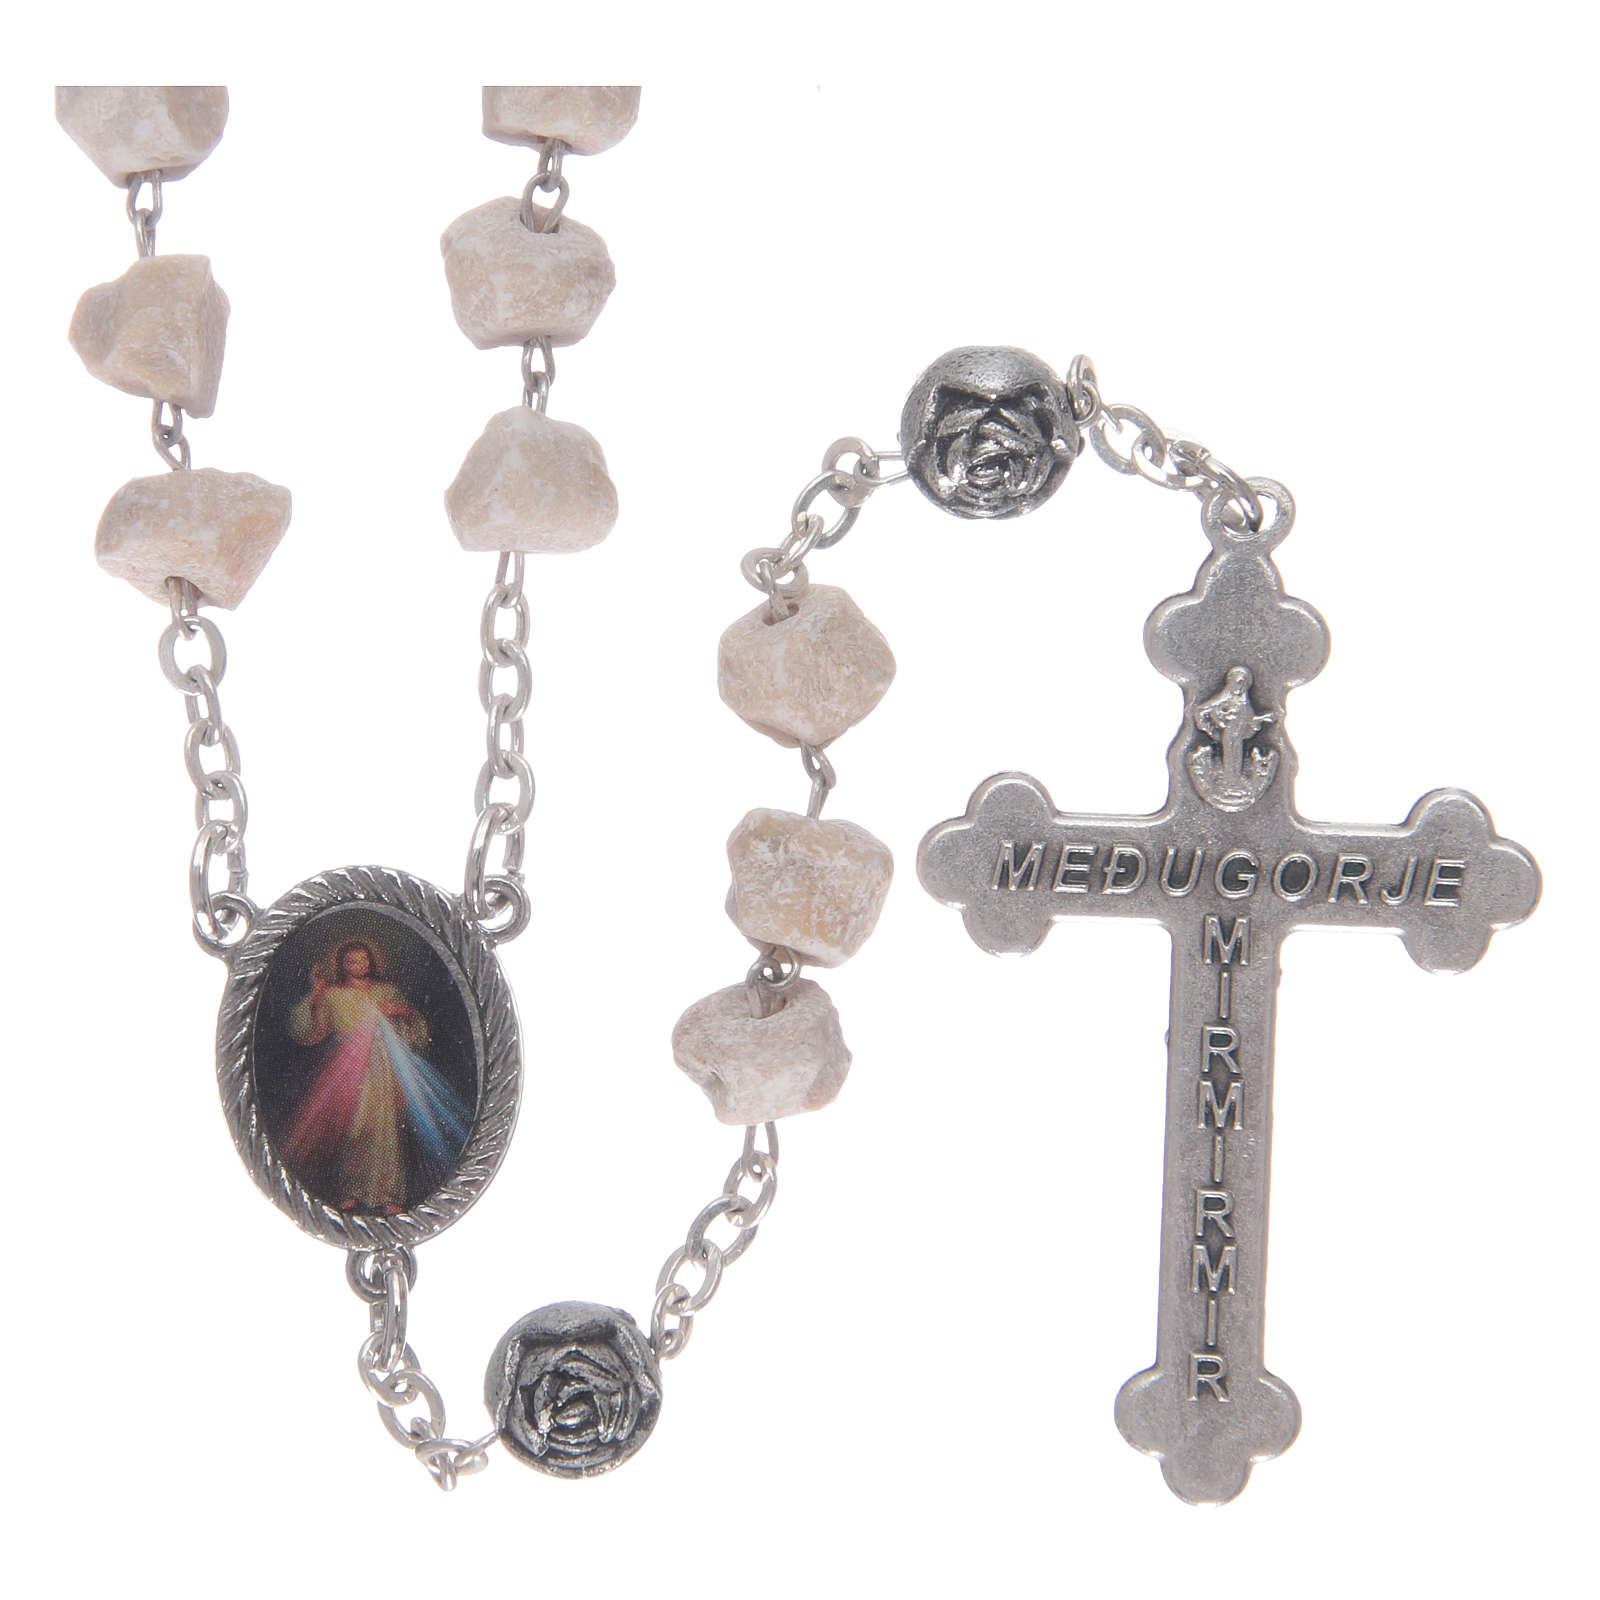 Medjugorje stone rosary with rose-shaped beads 4